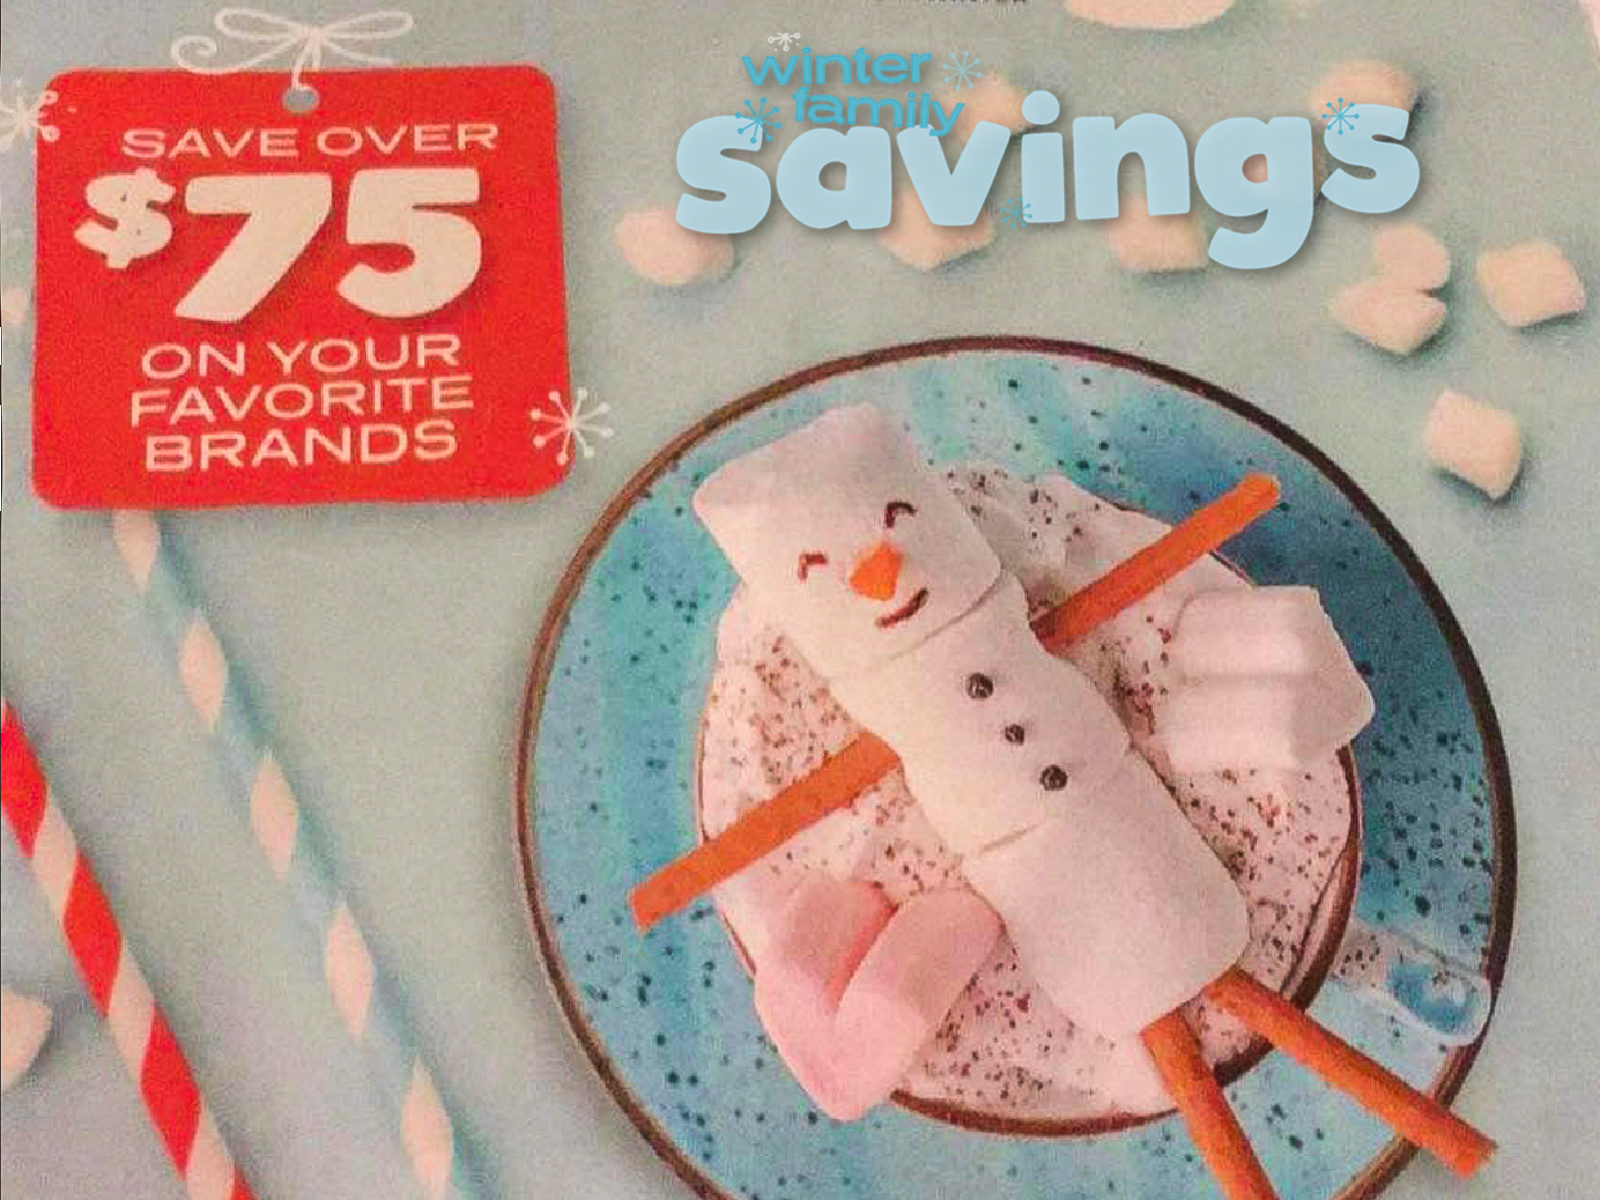 New Publix Booklet - Winter Family Savings Valid 11/14 - 12/31 on I Heart Publix